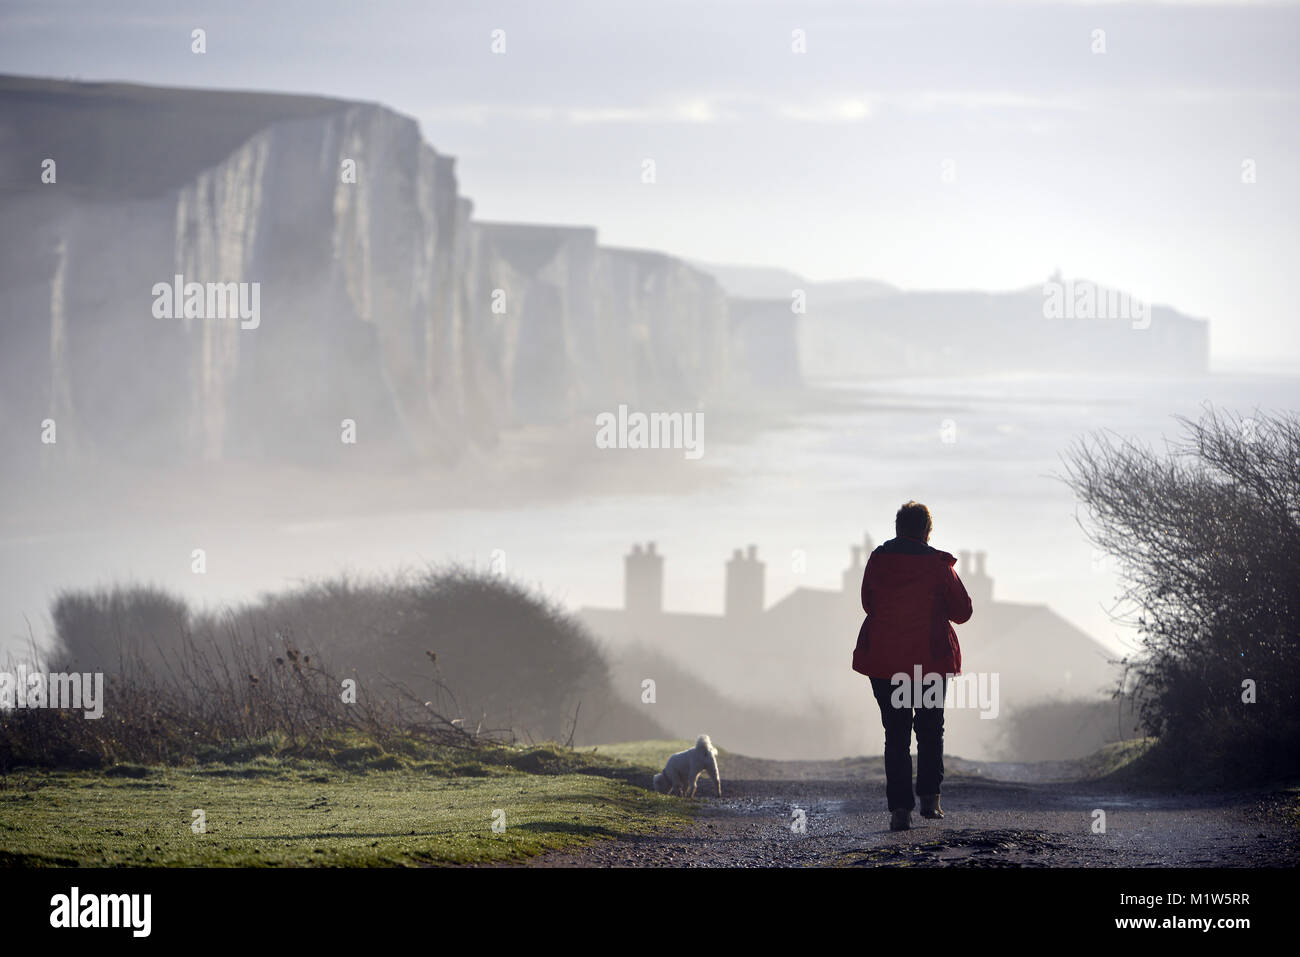 Lady walking dogs in the mist near the iconic Seven Sisters chalk cliffs, East Sussex, UK - Stock Image